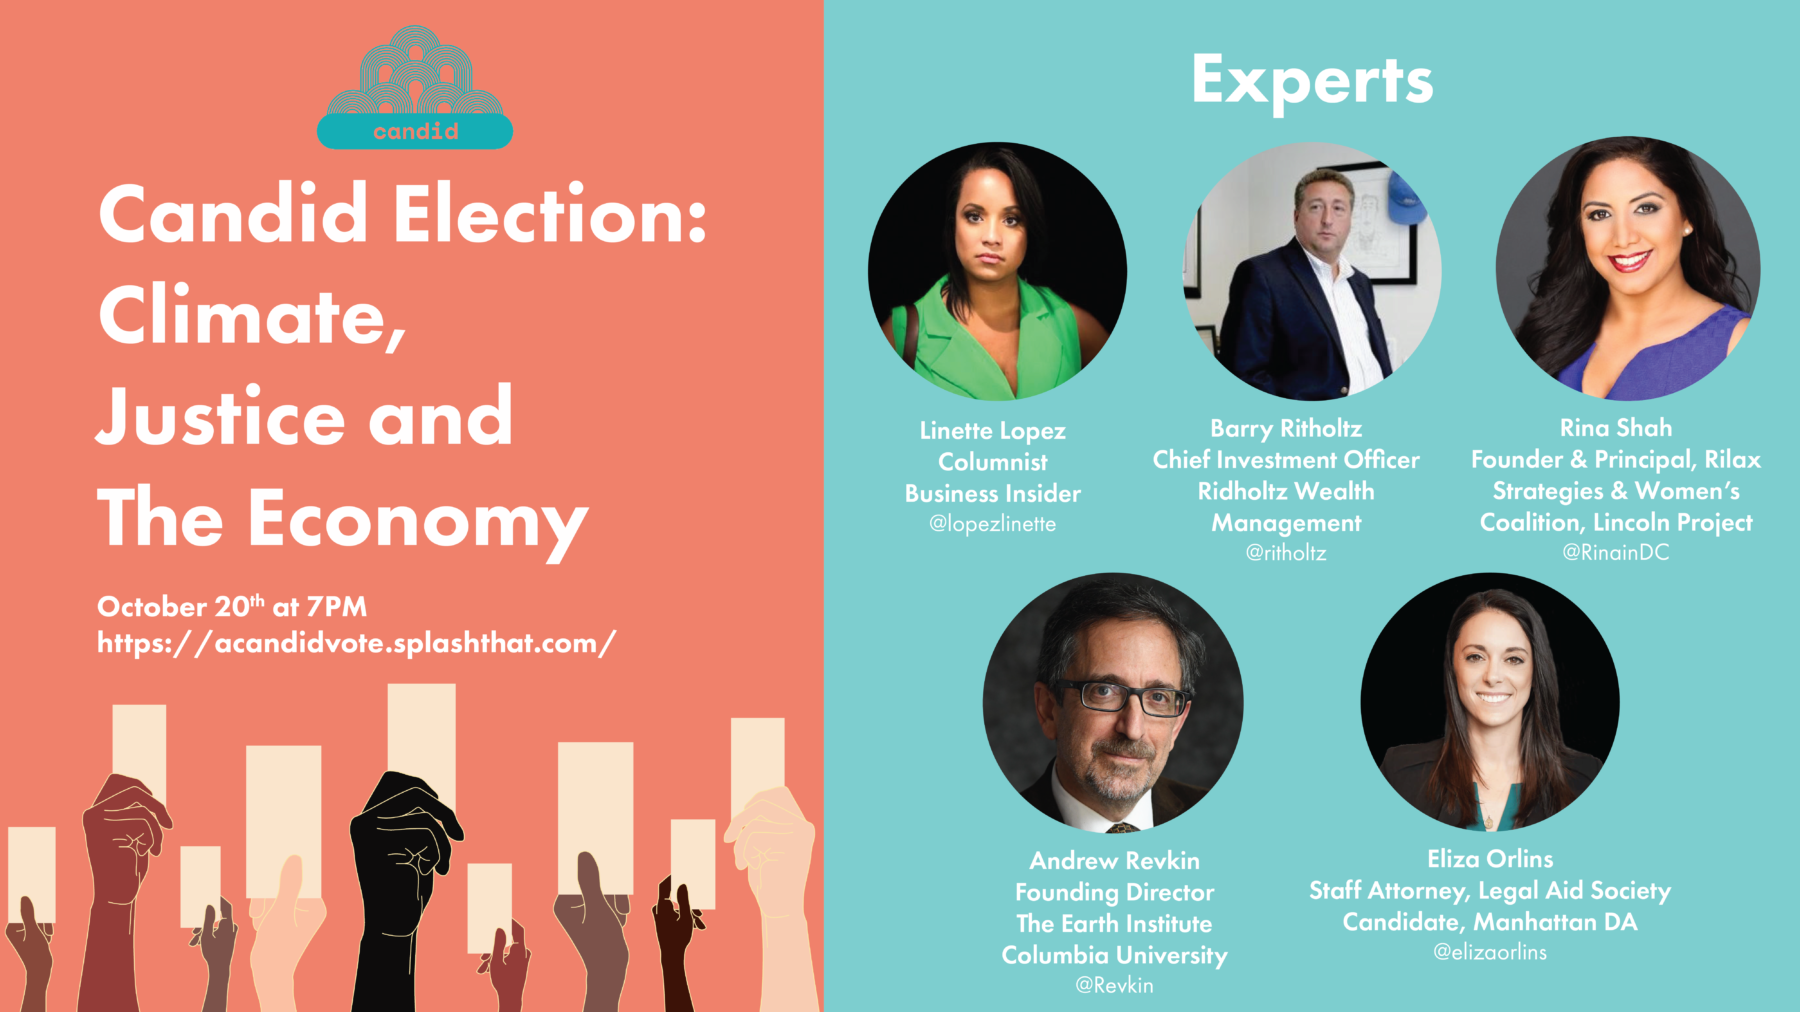 Tonight! Candid Election: Climate, Justice and The Economy 2